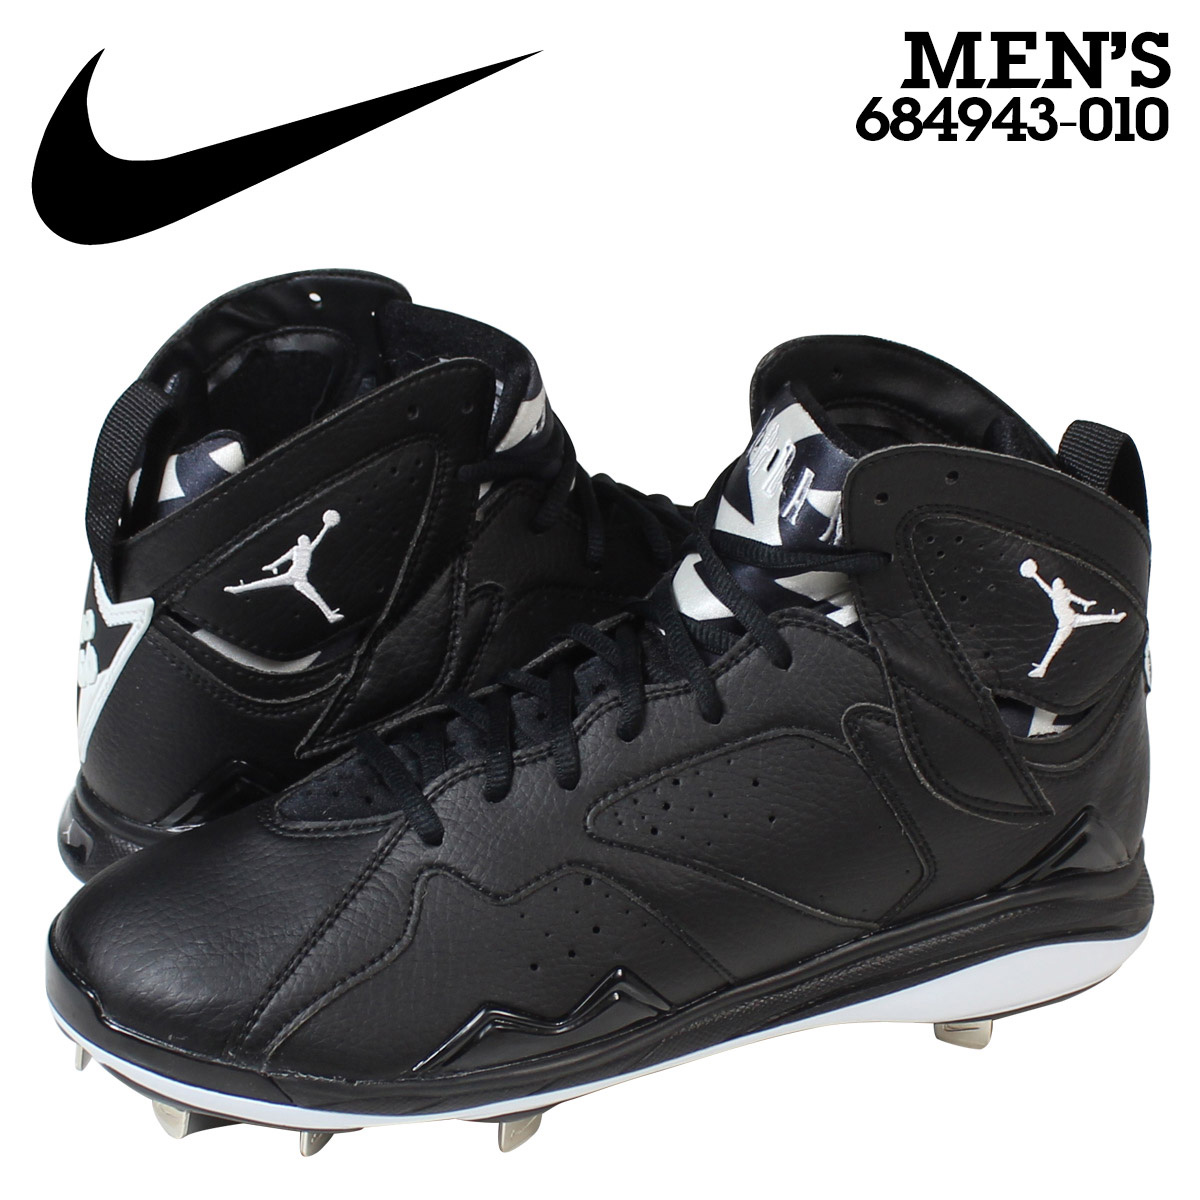 best website 96e81 6dae9 NIKE AIR JORDAN 7 RETRO METAL Nike Air Jordan 7 nostalgic spikes men  684,943-010 black